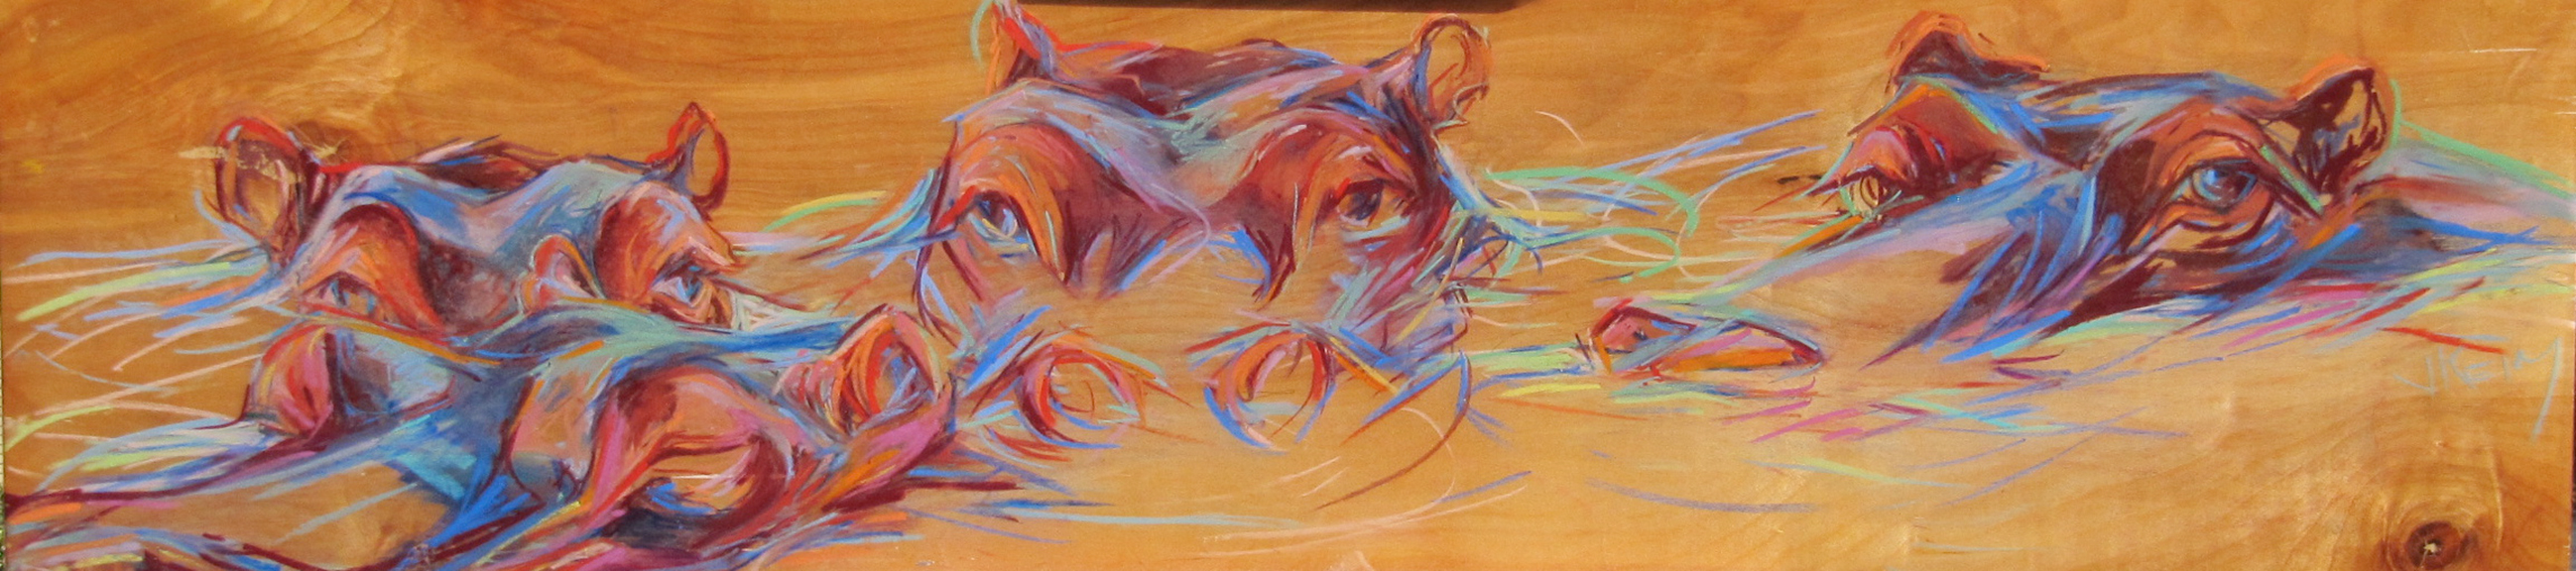 Hippo Hide - Pastel on Wood Panel 48x12